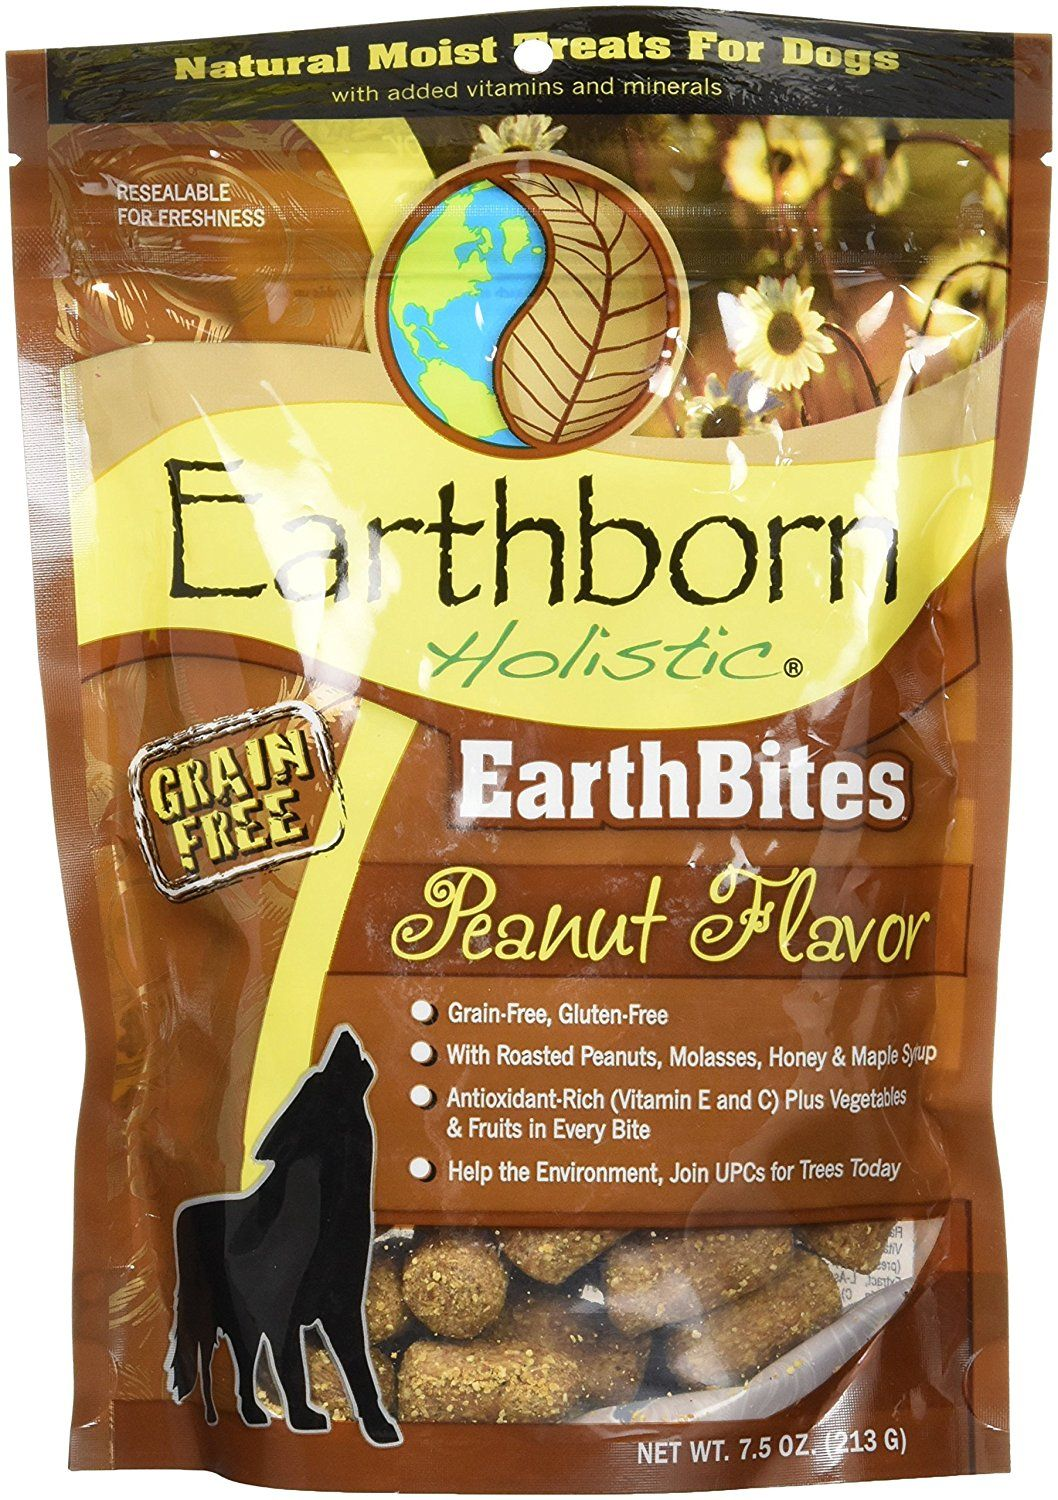 Earthborn Holistic Earthbites Peanut Flavor, 7.5oz